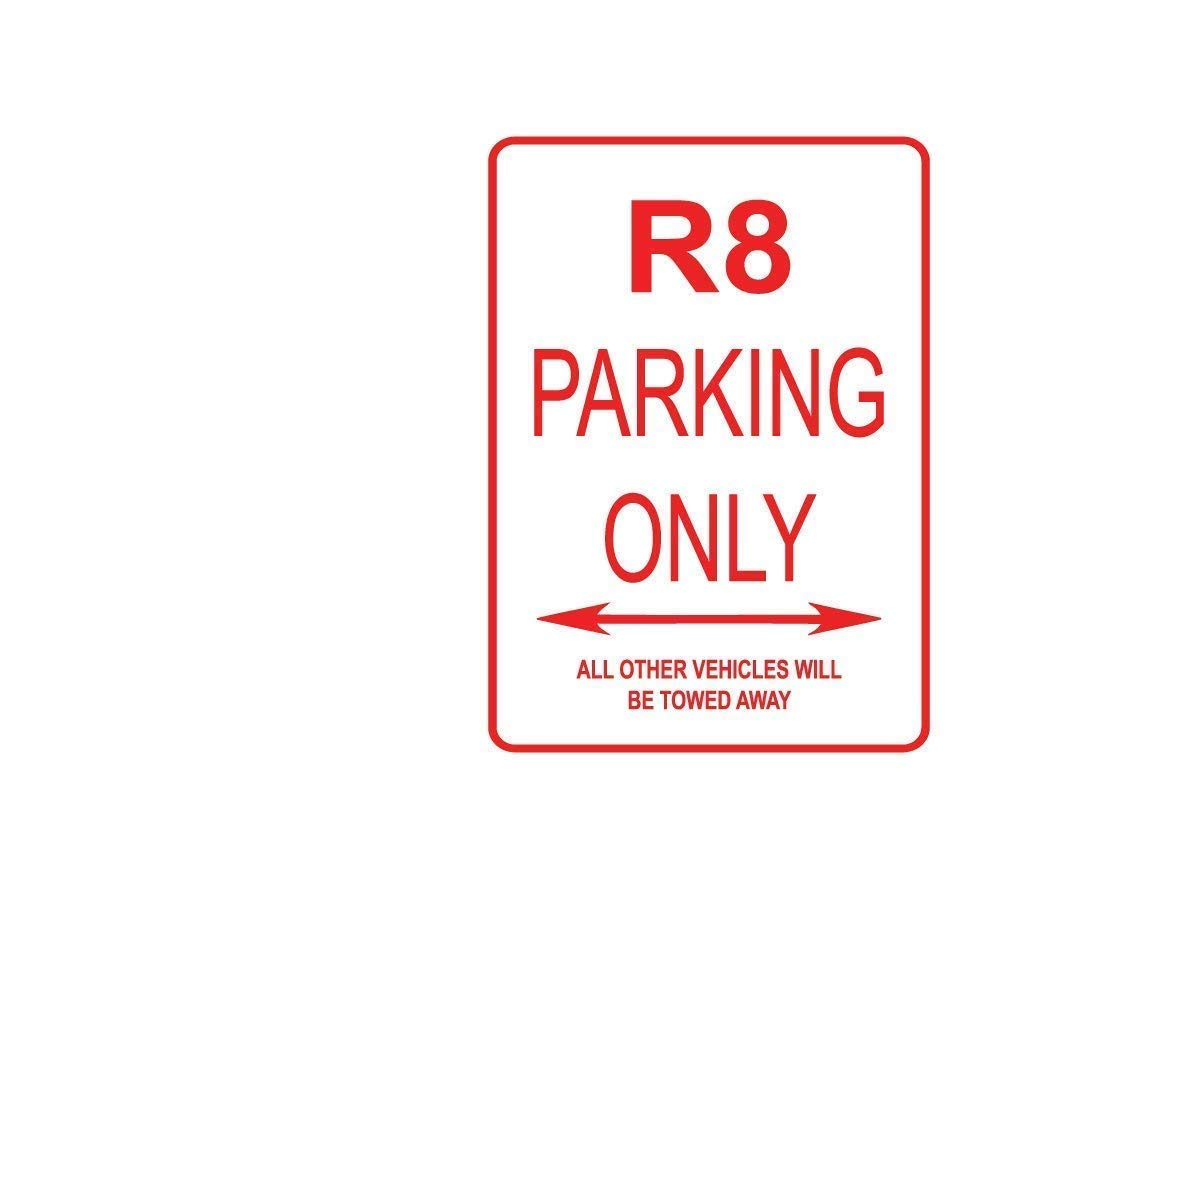 Tomlinsony New Metal Tin Sign Aluminum Piaggio Parking ONLY Street Sign 12 X 8